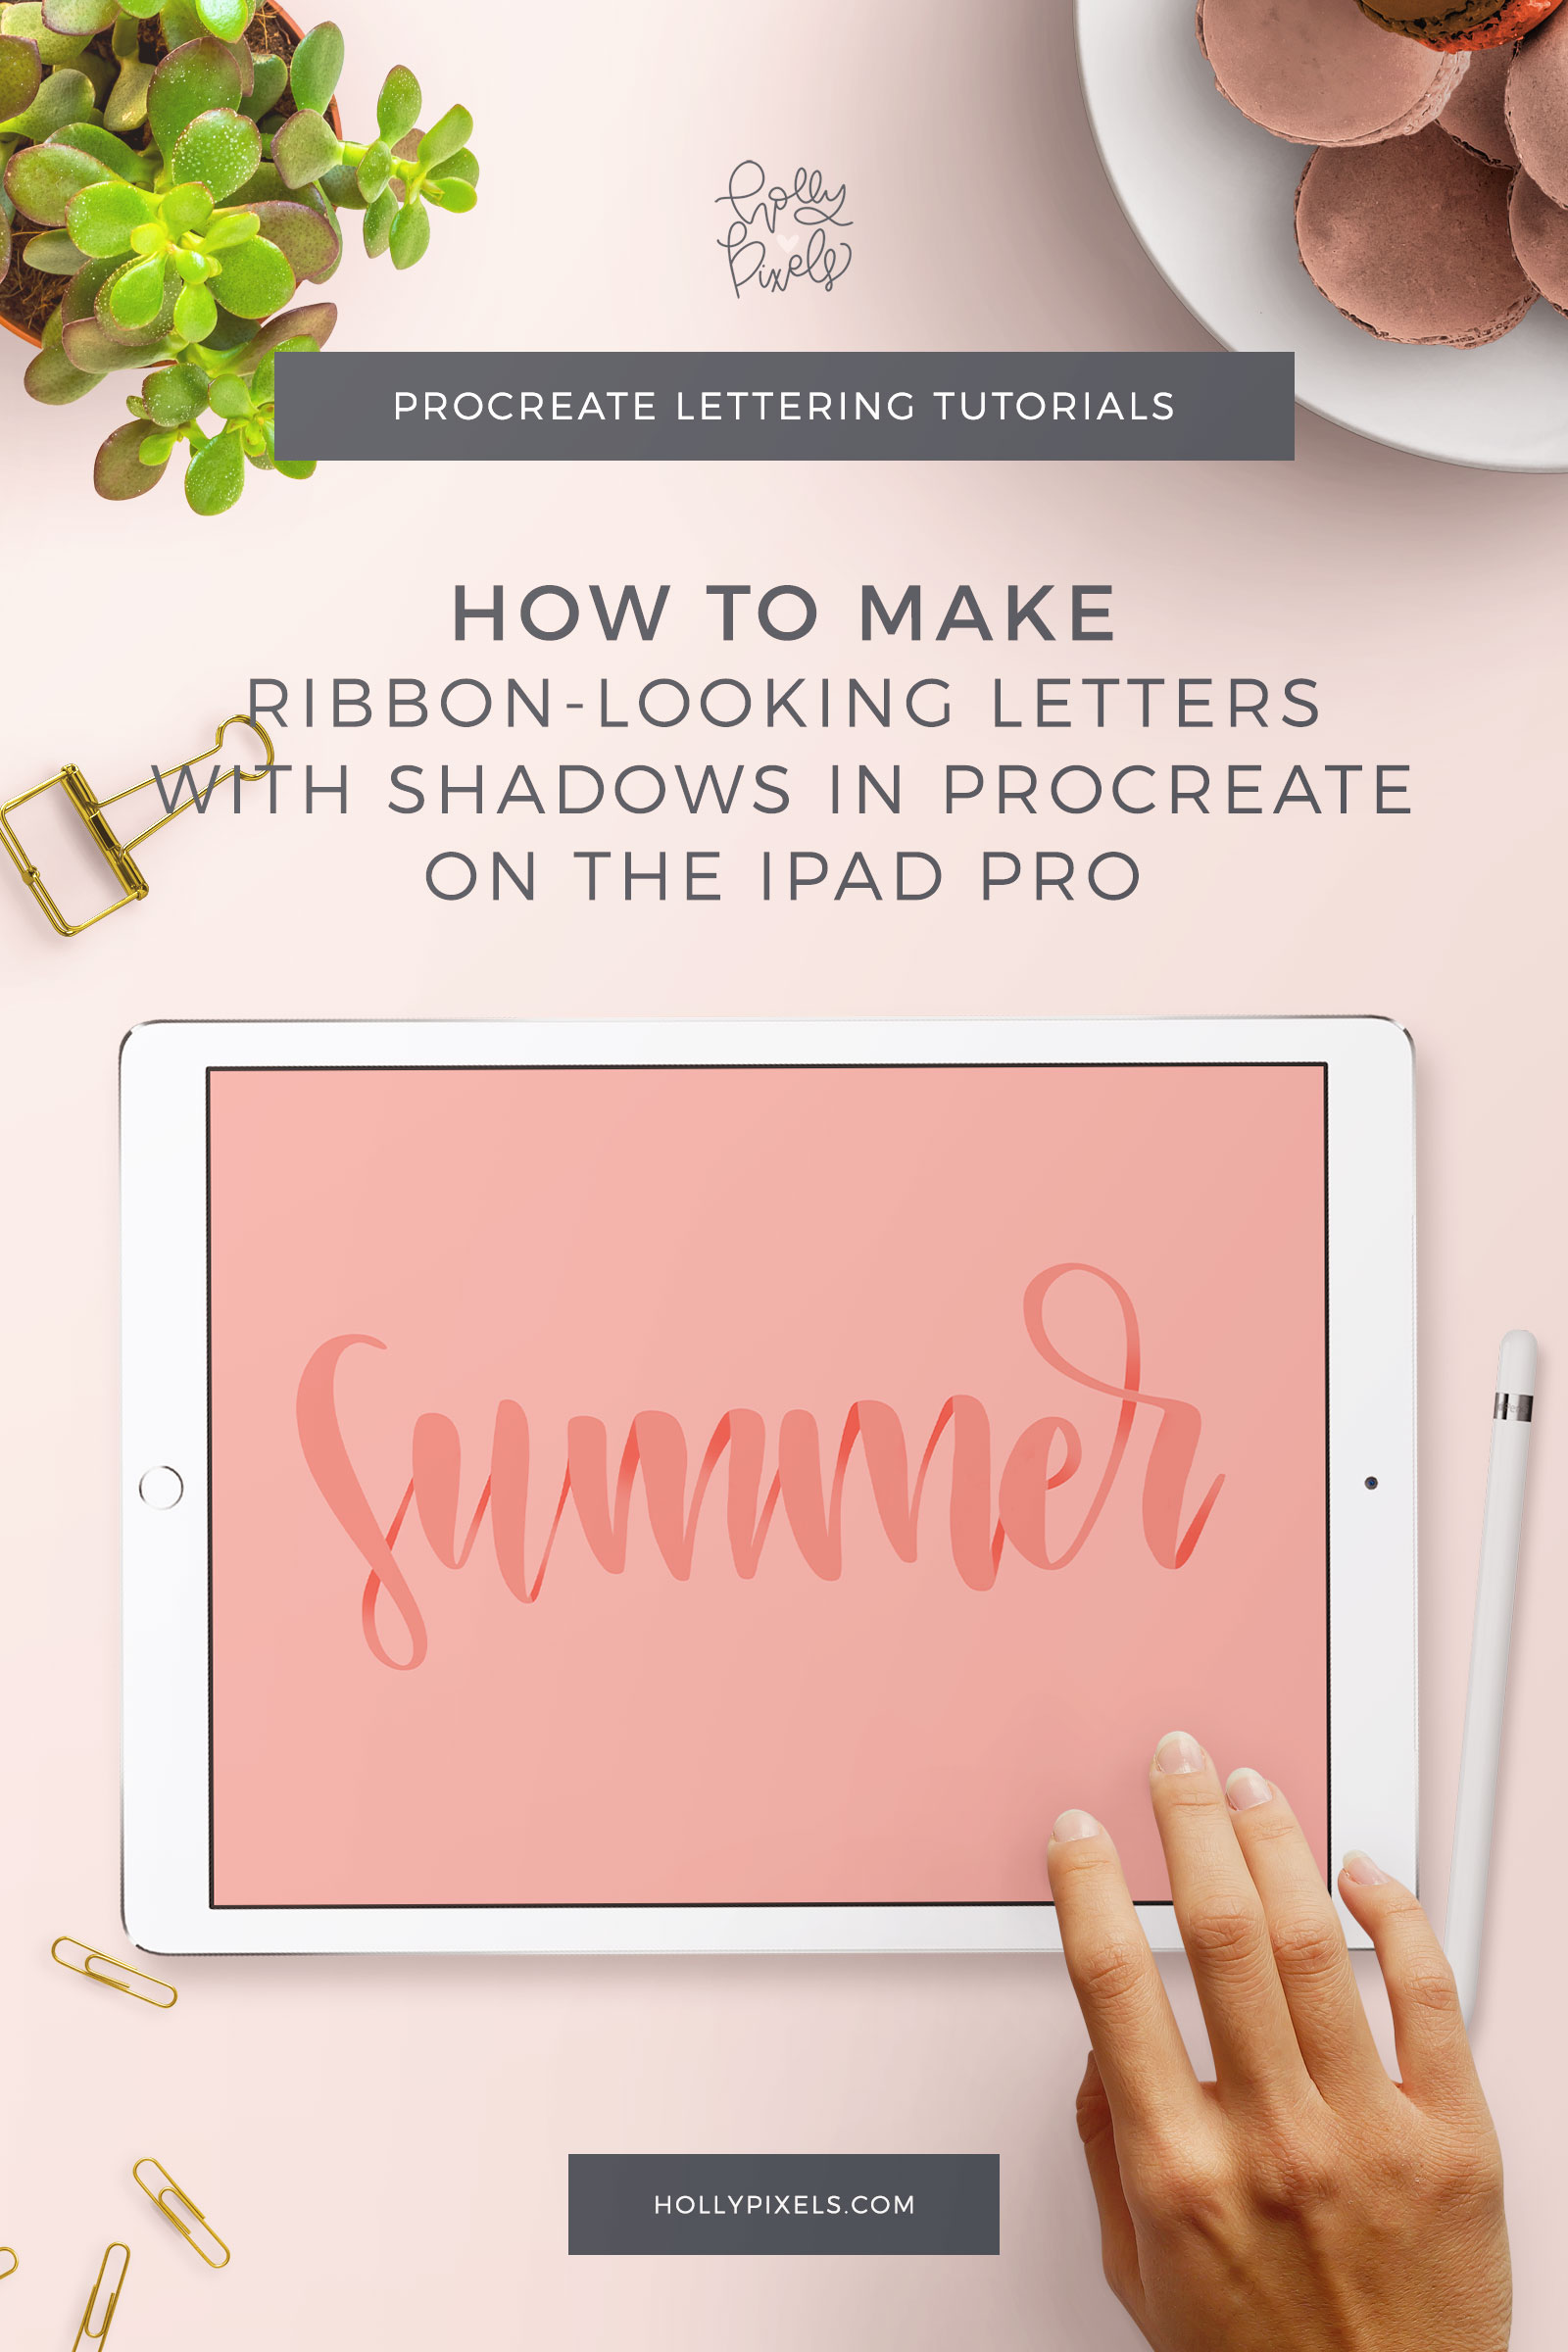 Ever see those really cool ribbon shadow effect looks with brush lettering? Well, today I'm going to show you a tutorial on how to create a ribbon shadow effect in Procreate so you can jazz up your brush lettering.